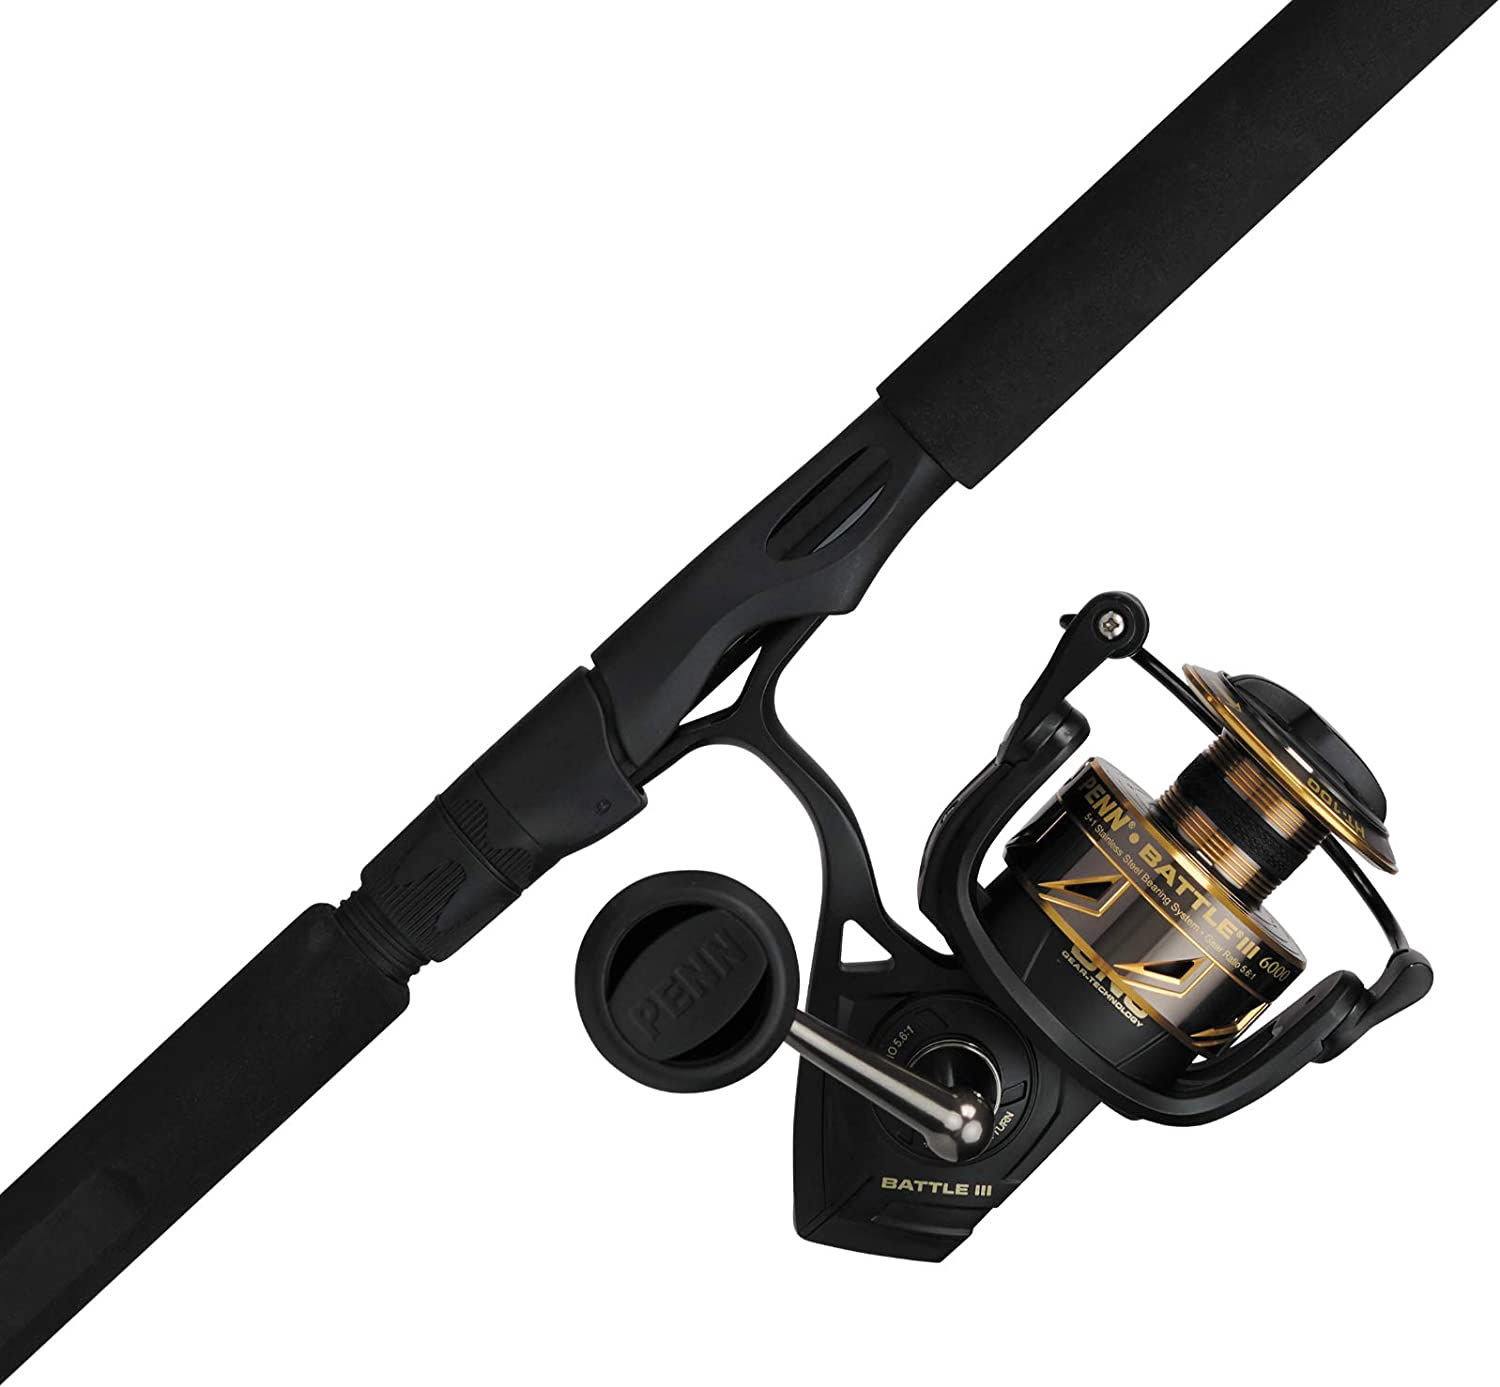 PENN Battle Spinning Reel and Fishing Black Rod Very popular Gold Selling 6000 Combo